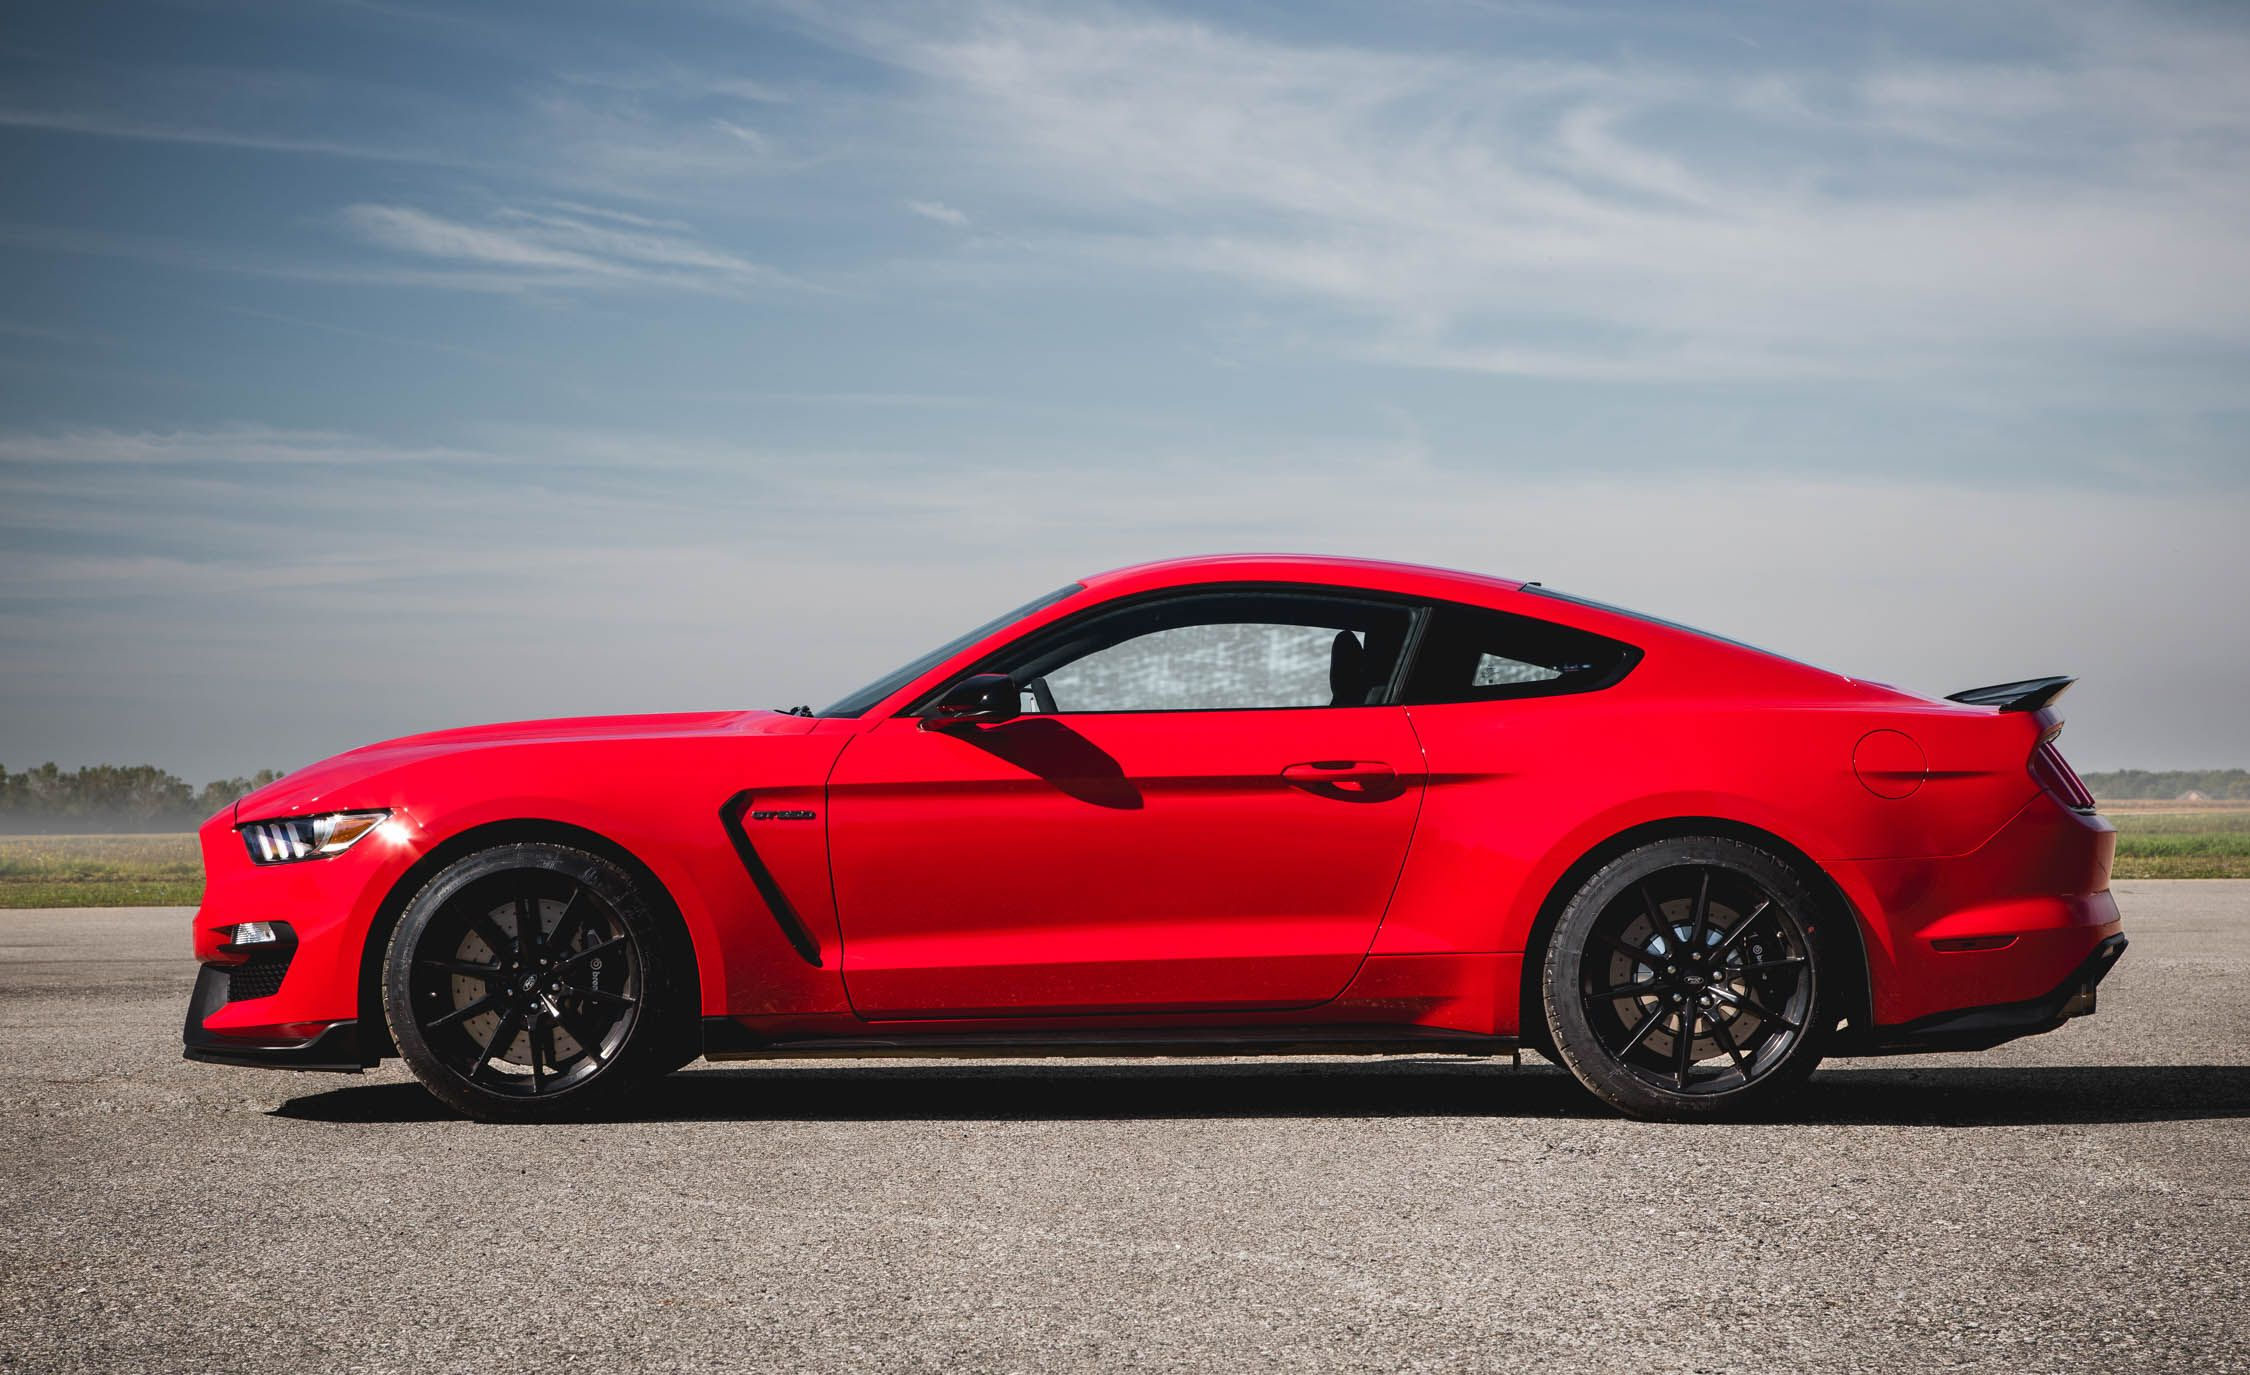 Gt350r Review >> 2018 Ford Mustang Shelby GT350 / GT350R | Interior Review | Car and Driver